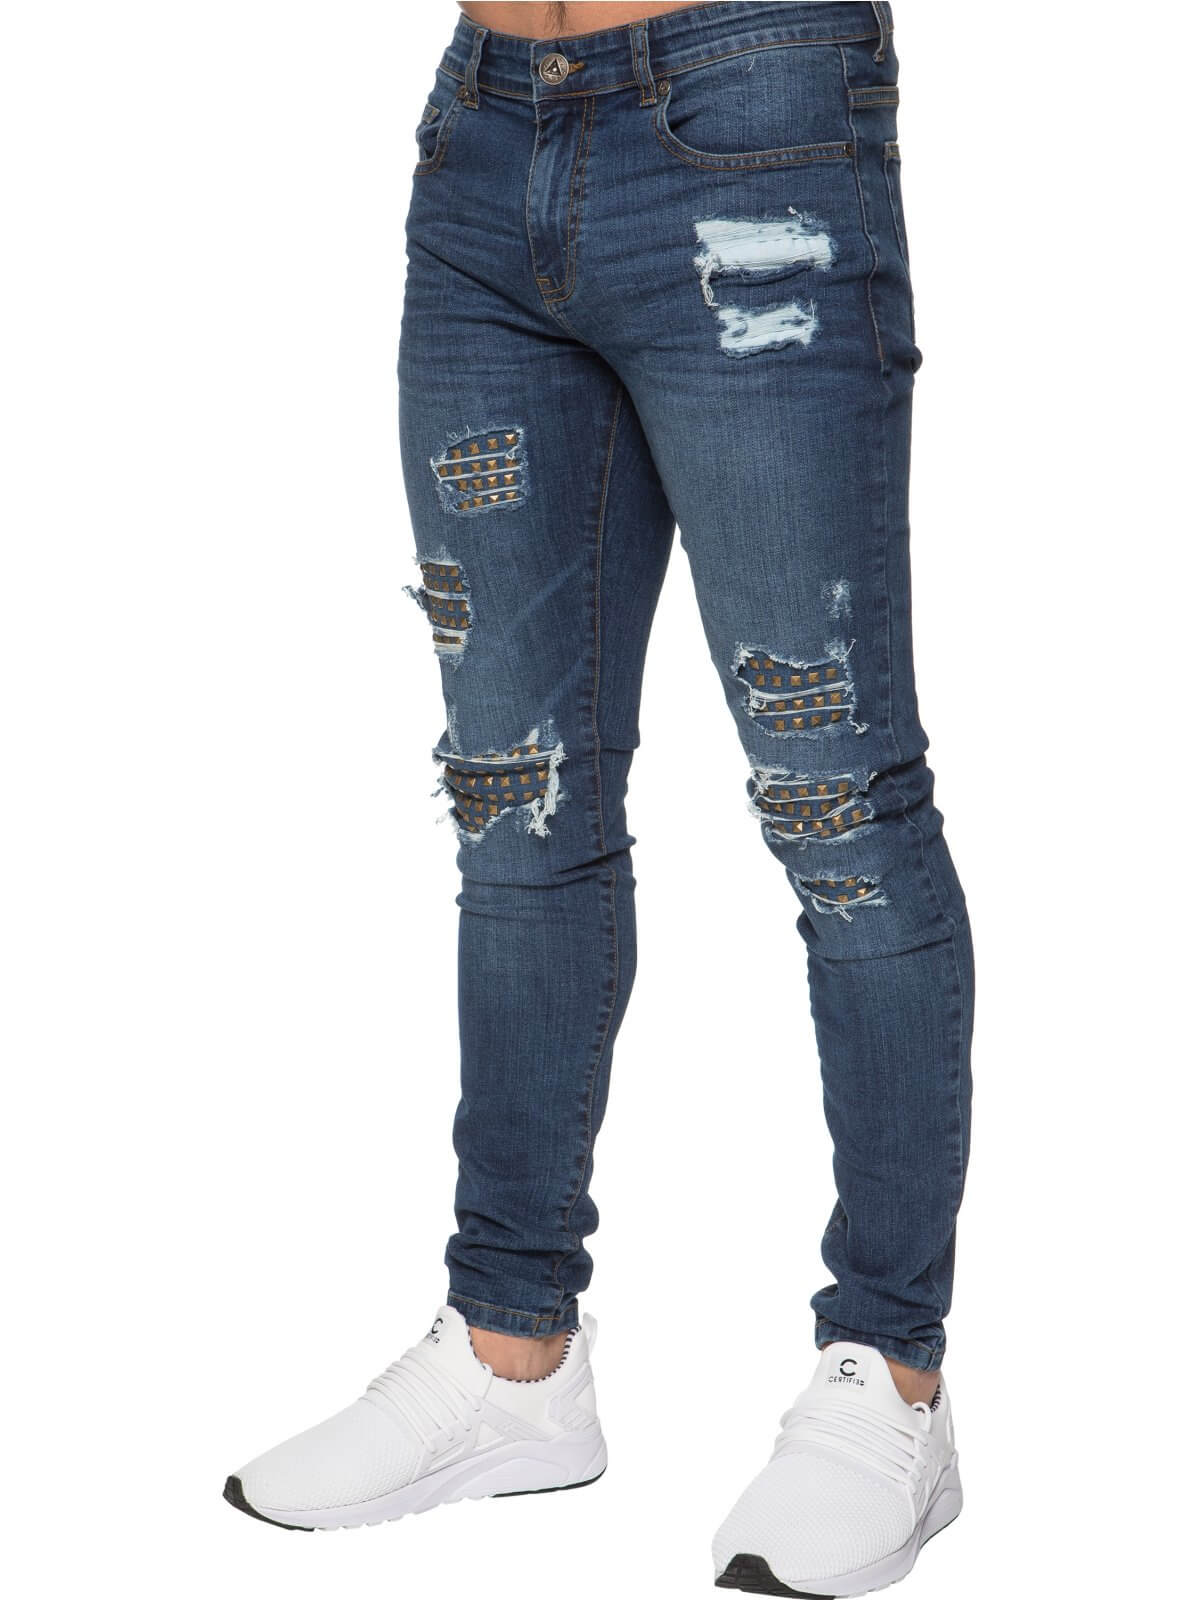 Clearance | Mens Blue Skinny Stretch Denim Jeans Featuring Stud Details | Enzo Designer Menswear